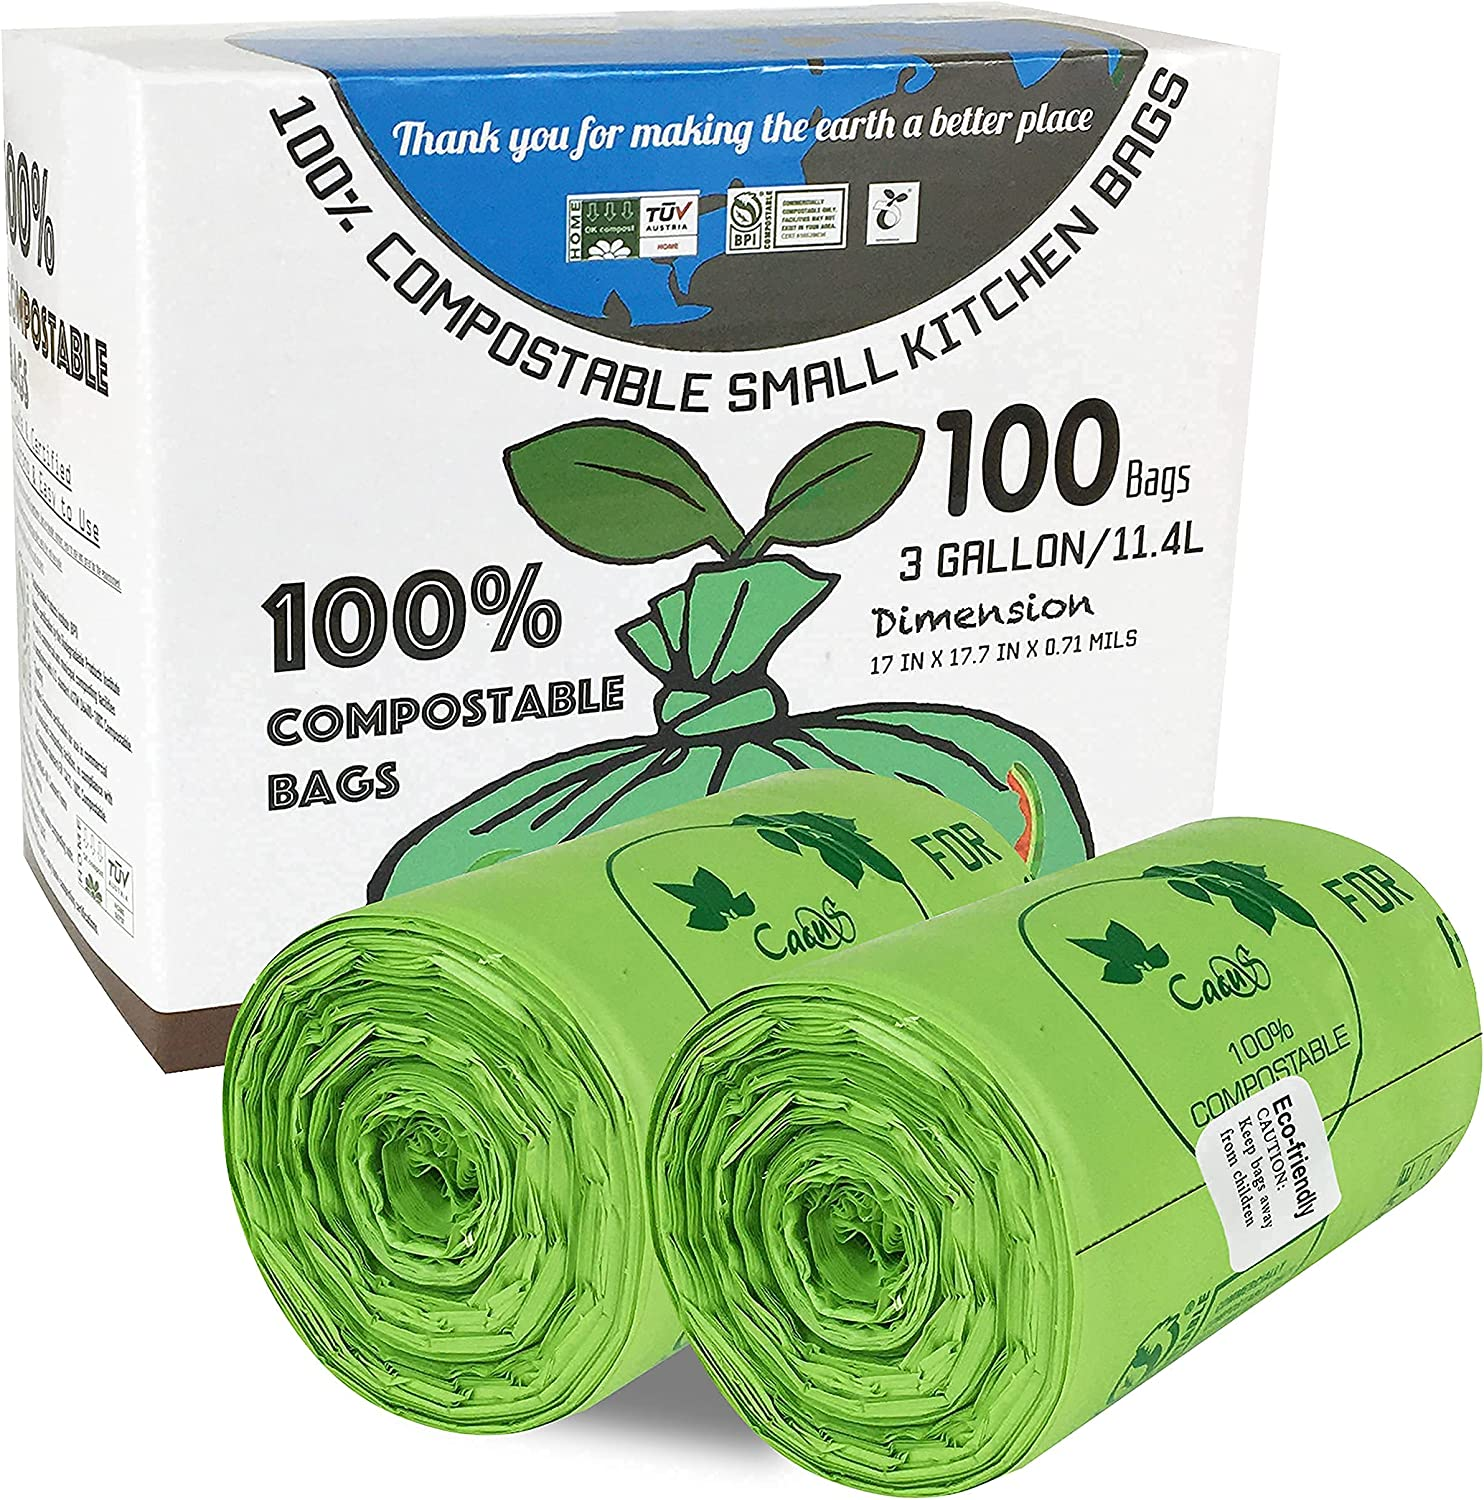 CACUS 100% Compostable Trash Bags, 3 Gallon/11.4 Liter, 100 Count, Extra Thick 0.71 Mils, Biodegradable Trash Bags, Food Waste Bags, US BPI and Europe OK Compost Home Certified